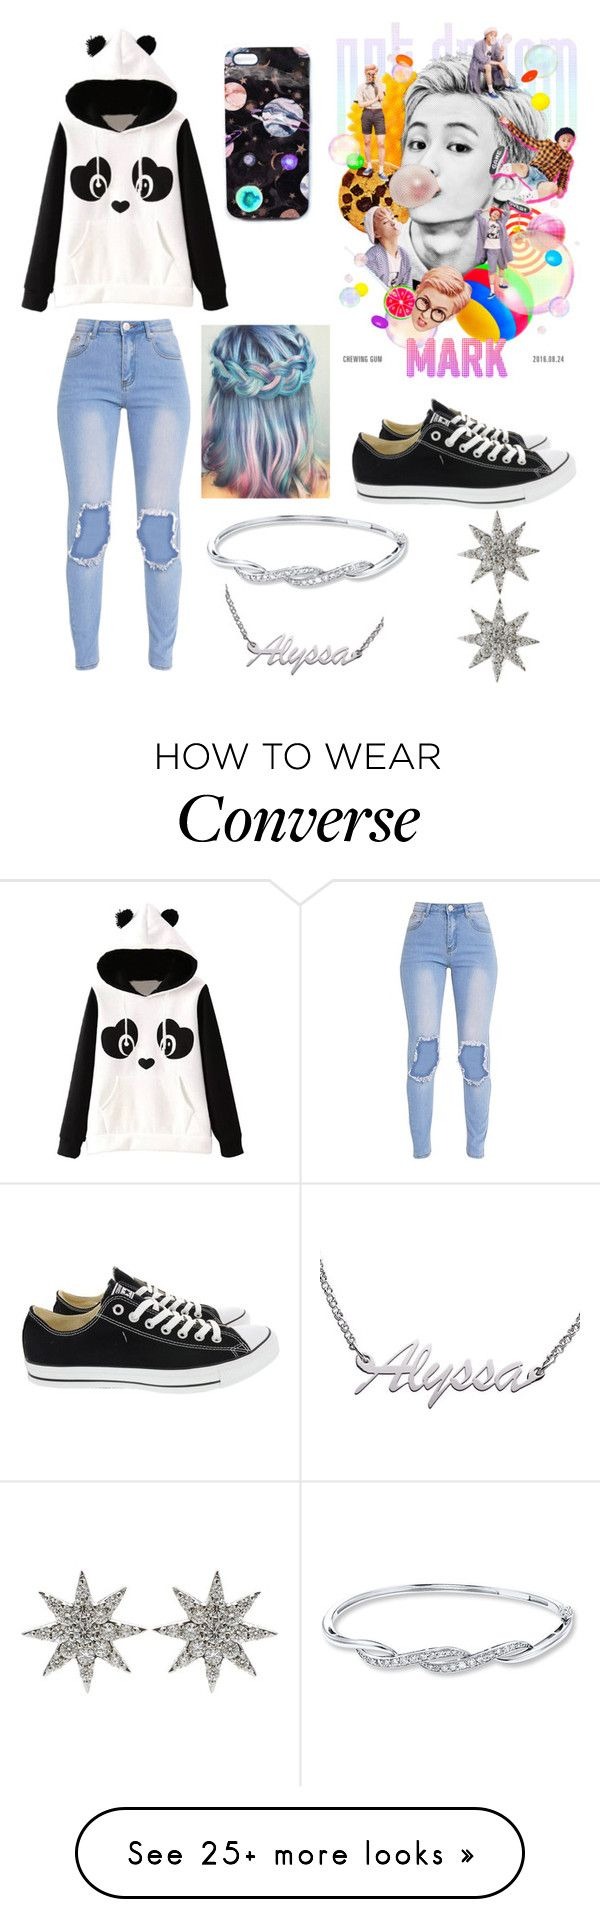 """Alyssa"" by darkwolf15 on Polyvore featuring Ultimo, Converse, Nikki Strange and Bee Goddess"